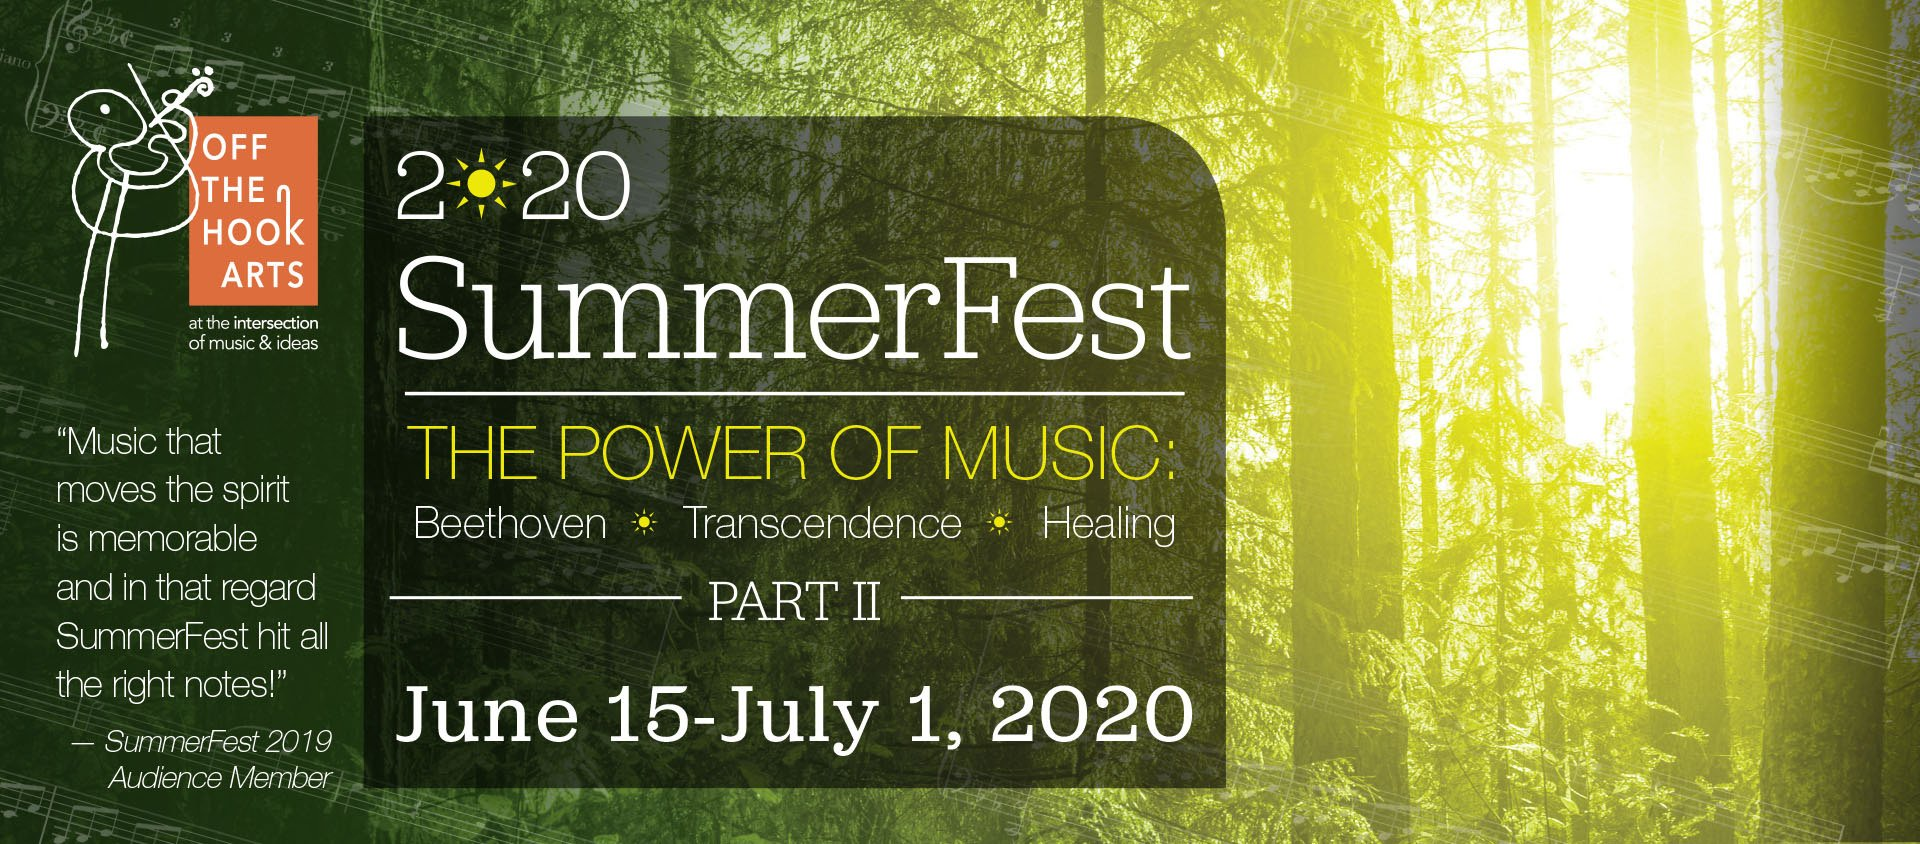 SummerFest 2020 - The Power of Music Off the Hook Arts